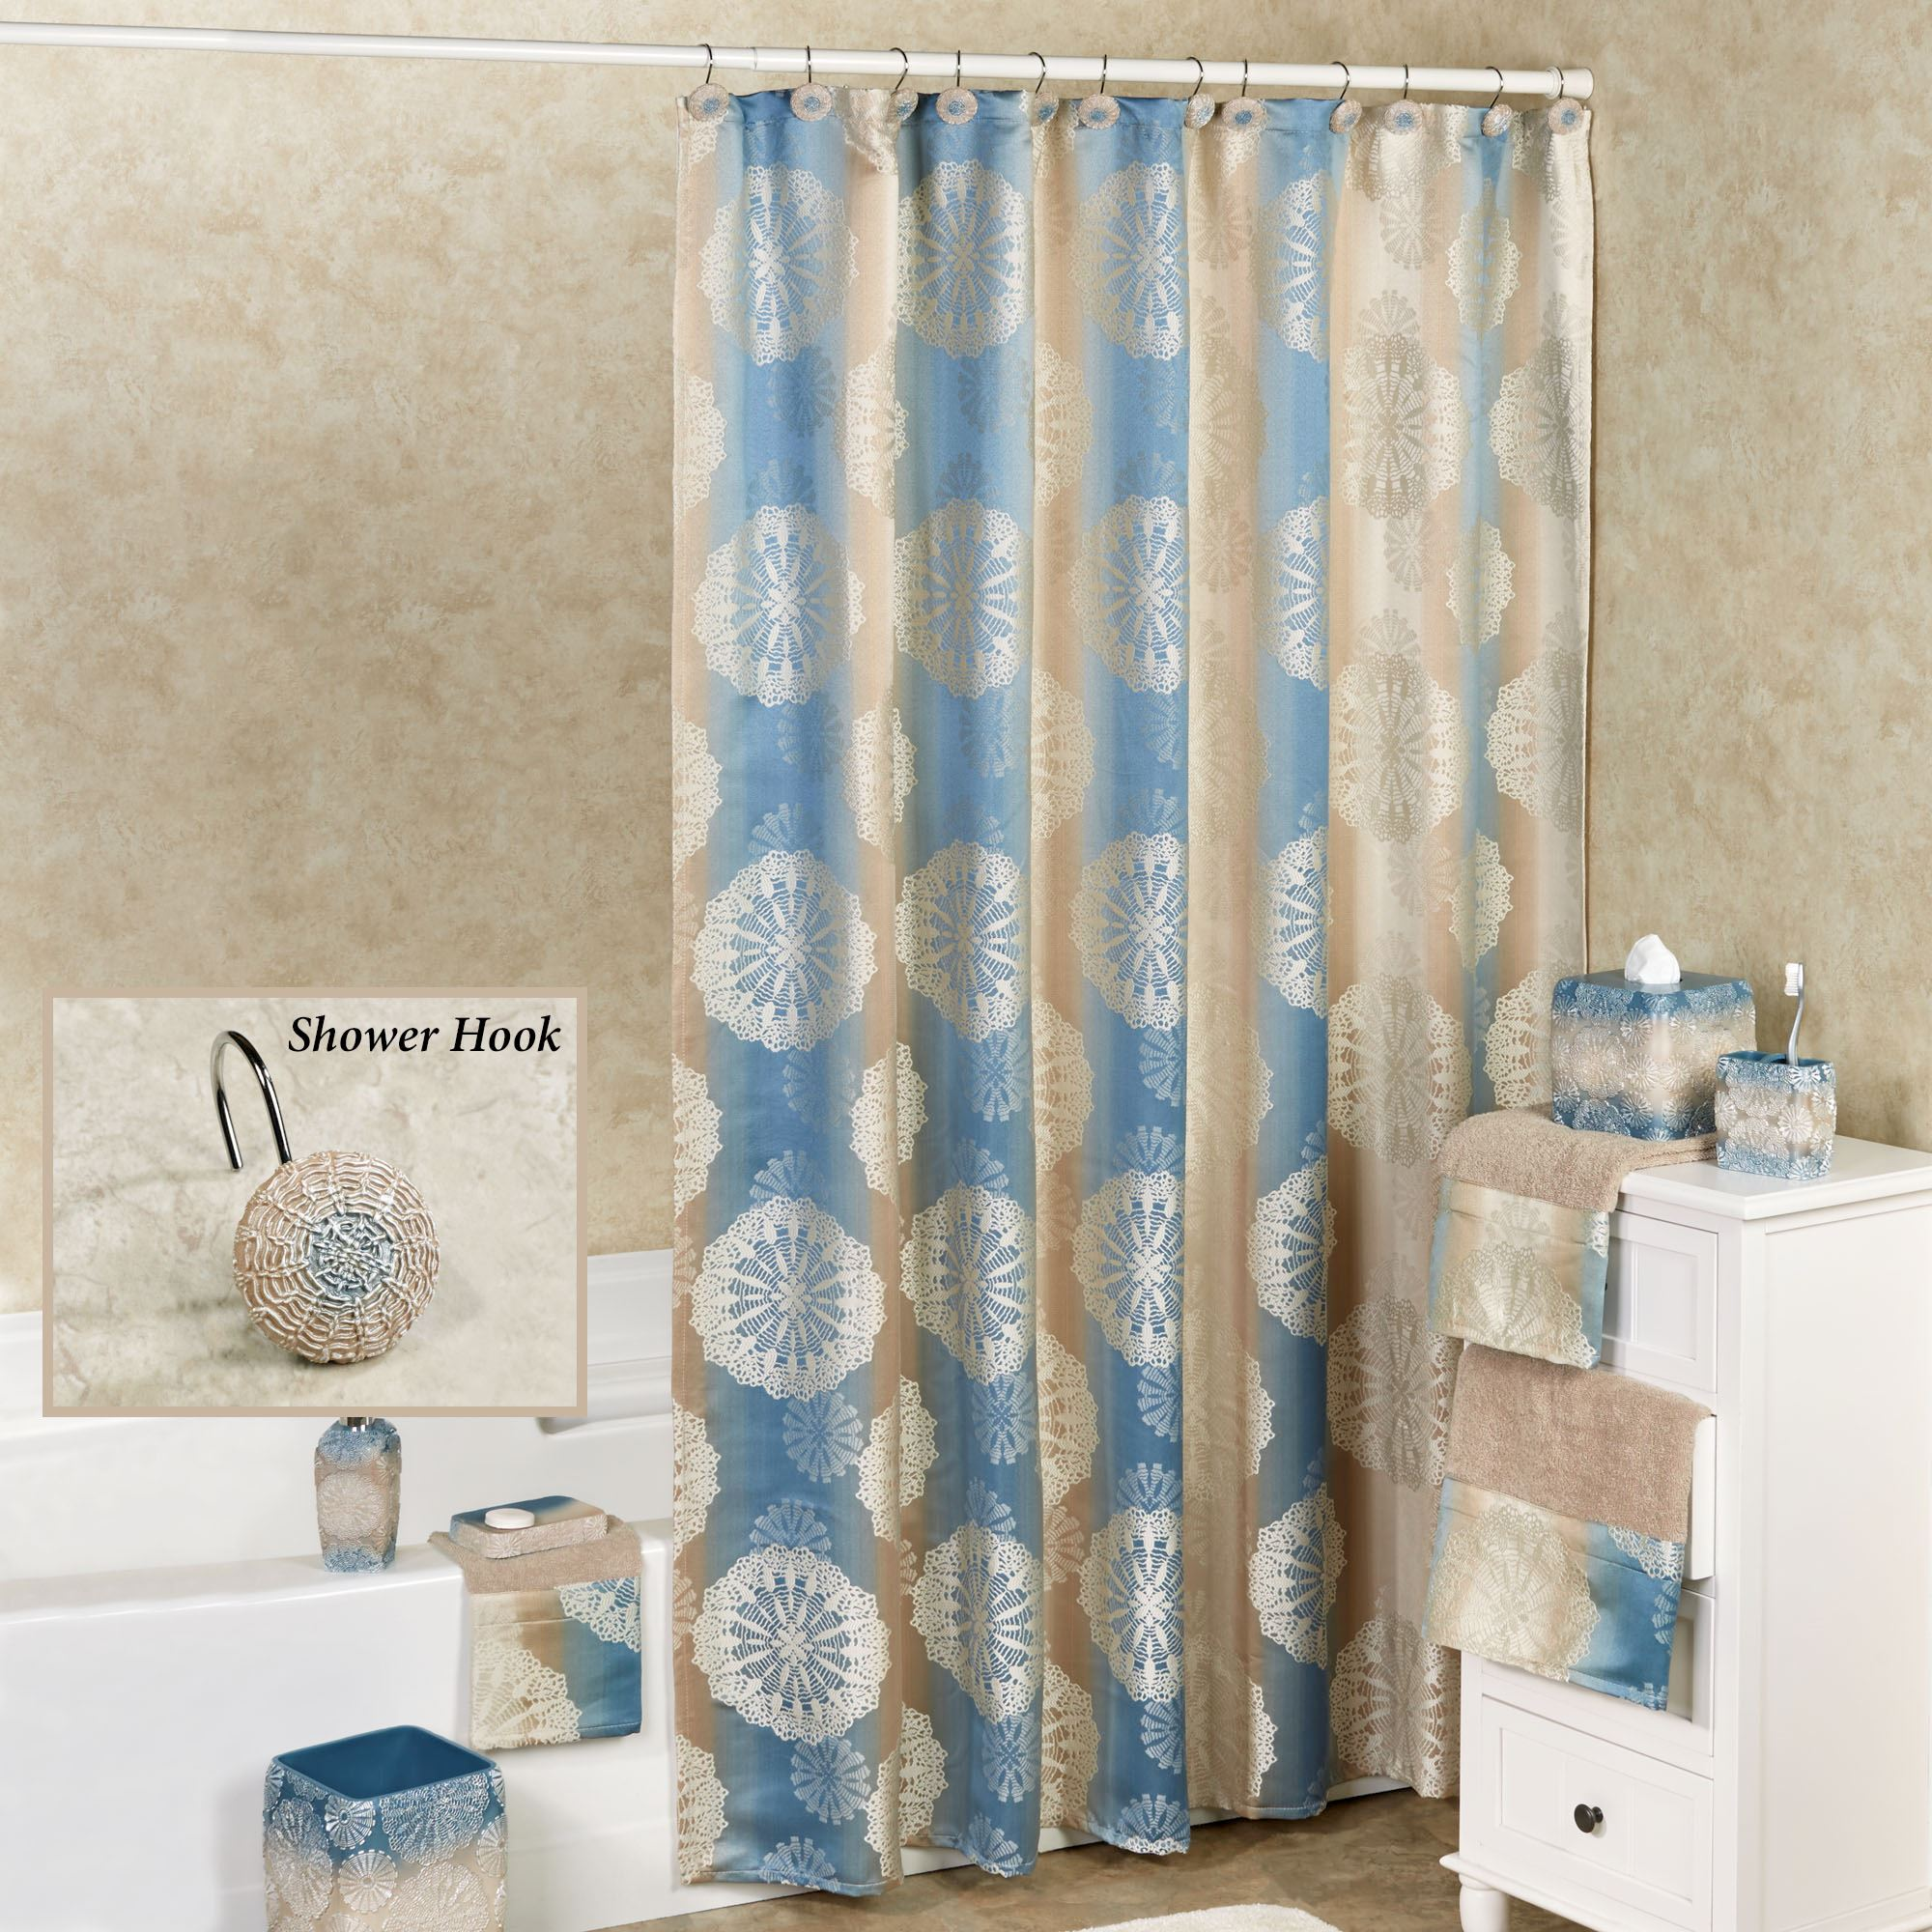 keya showr medallion room stripe curtain darkening window decor medallions products panel shower set blue lush